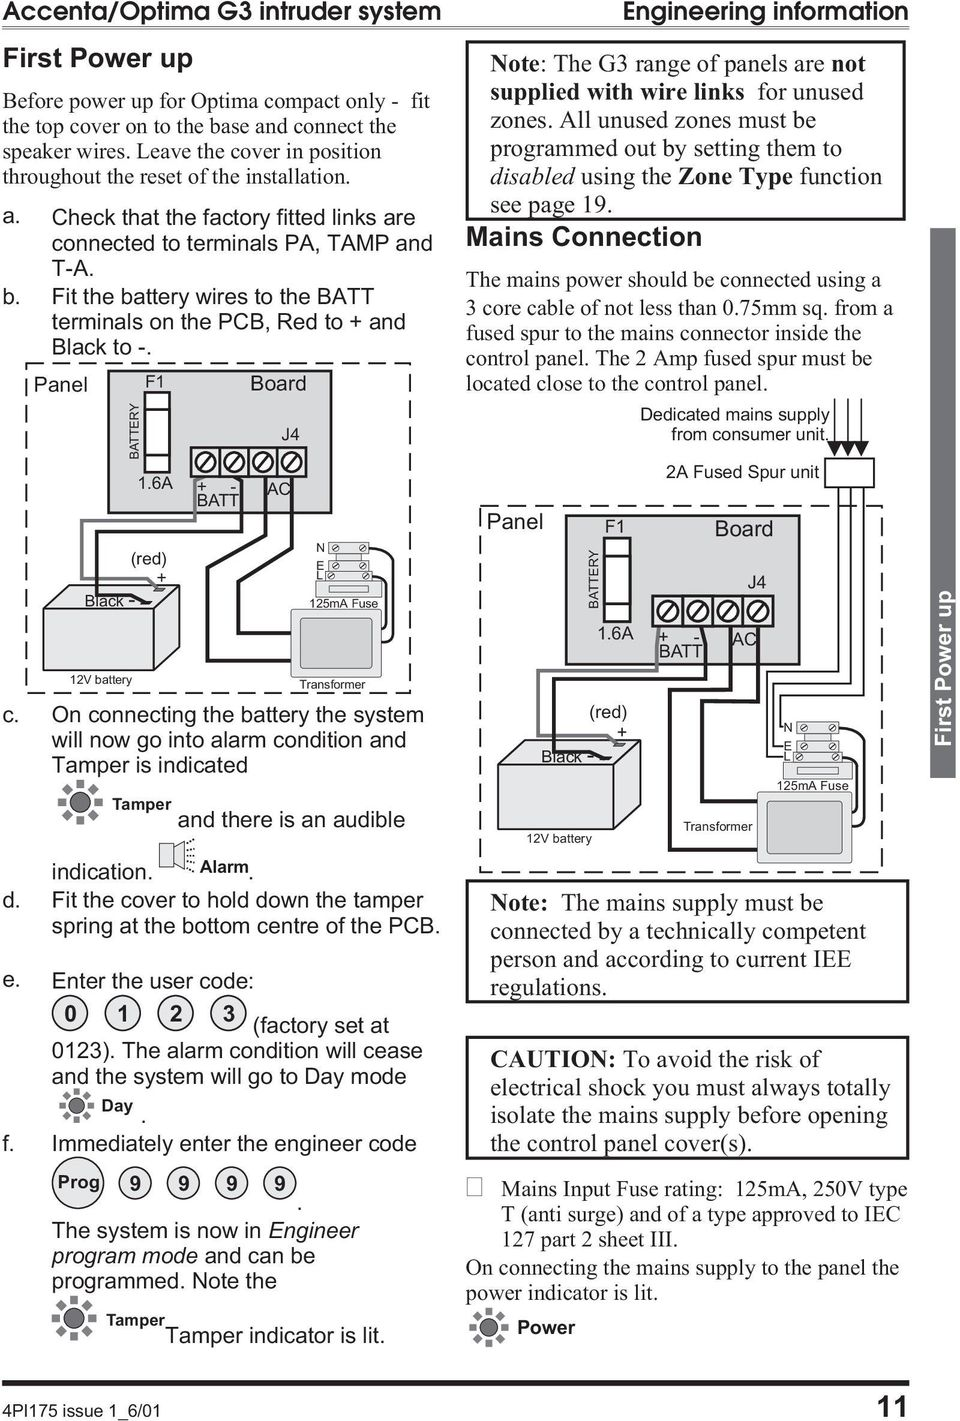 Intruder Alarm System Engineering Information Pdf Transformer Wiring Diagram Fit The Battery Wires To Batt Terminals On Pcb Red And